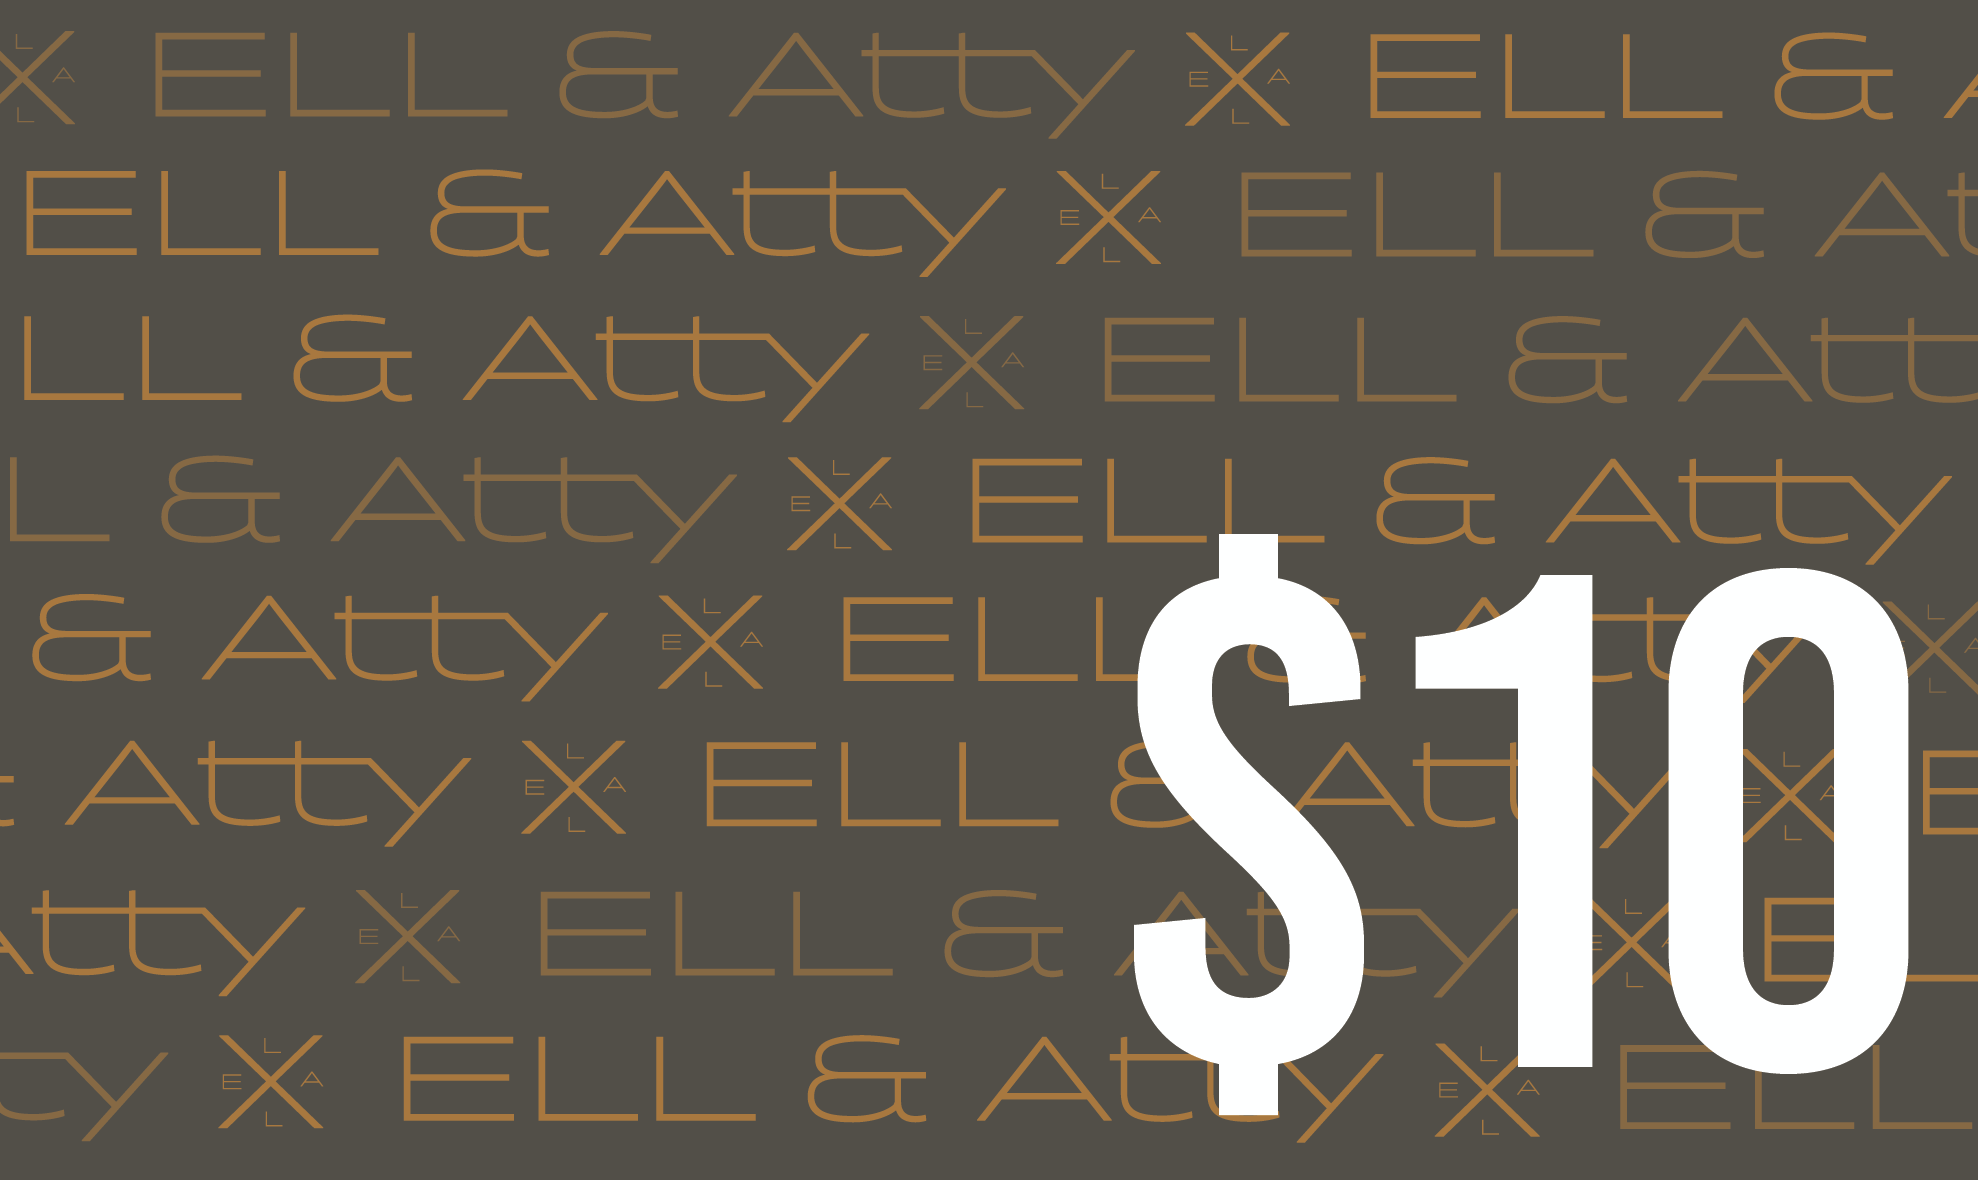 Gift Card - ELL & Atty